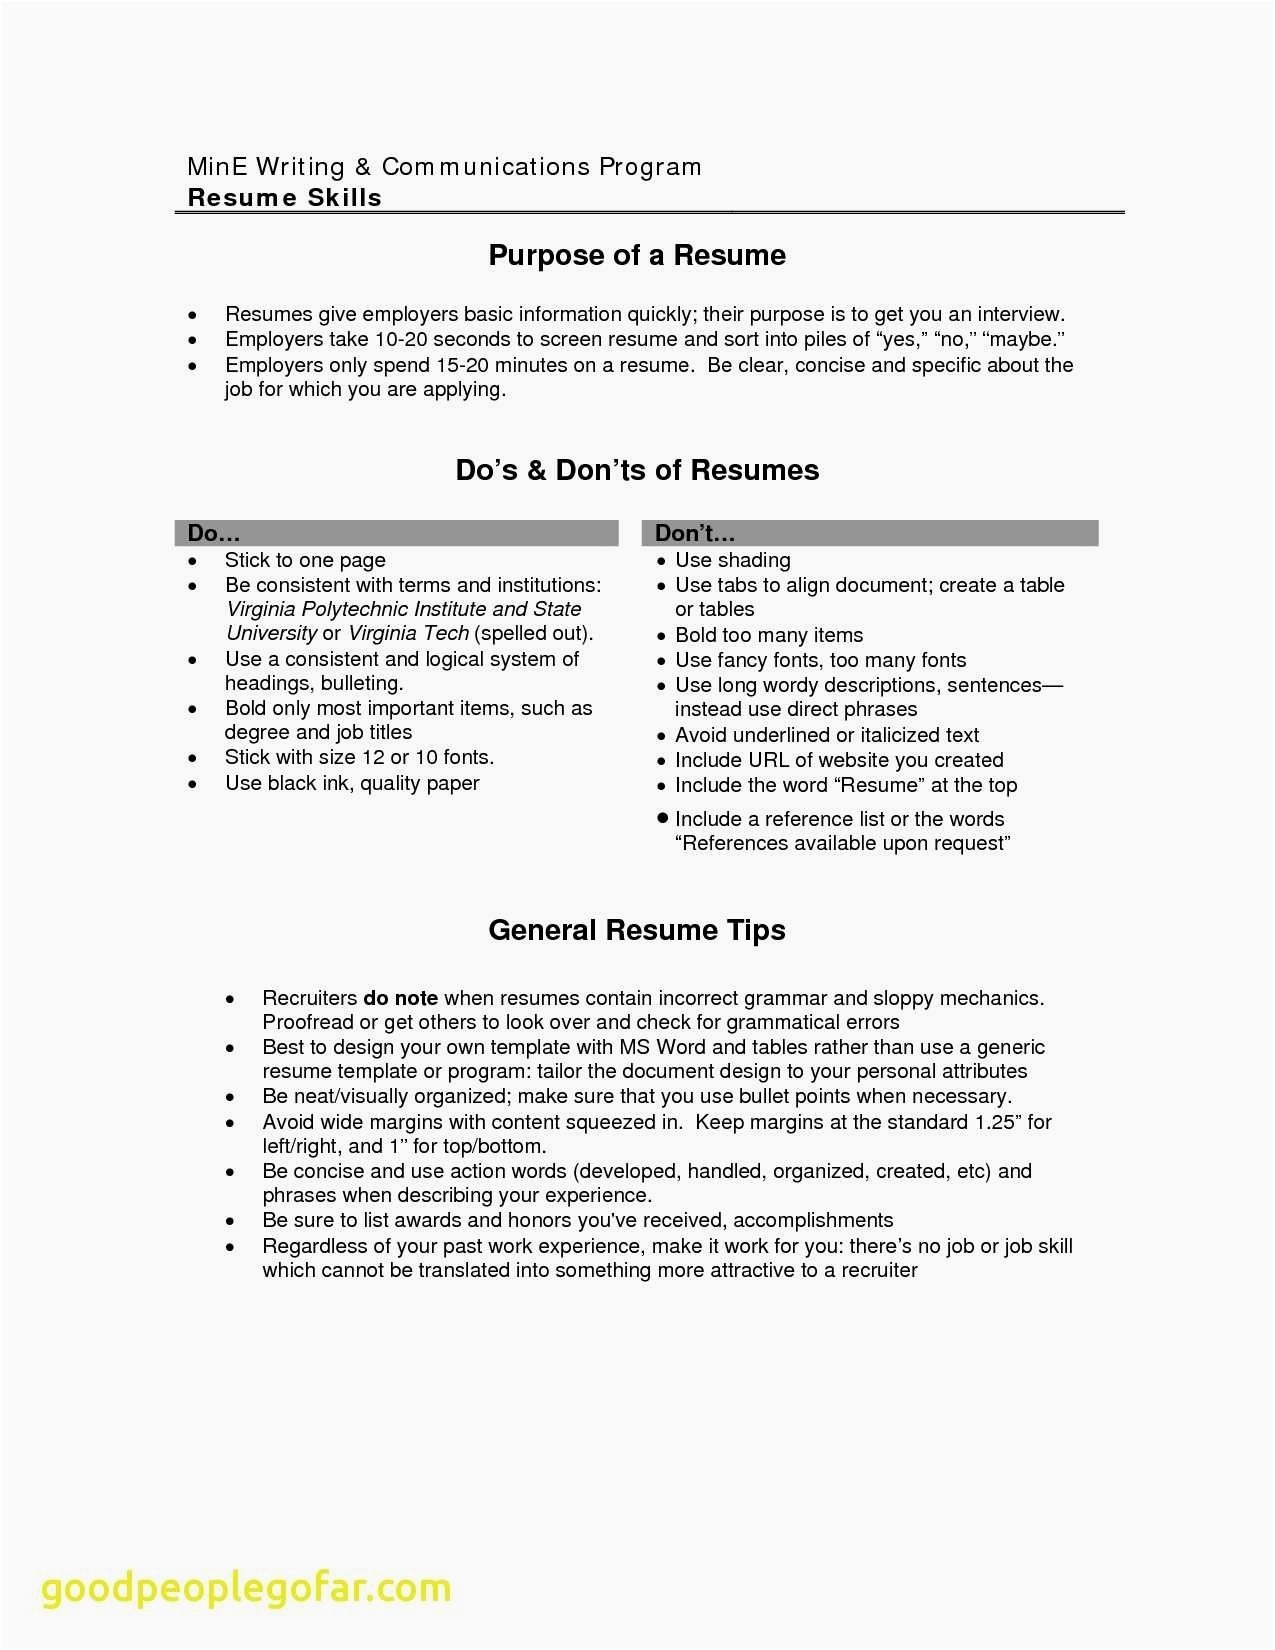 Strong Verbs Resume - Verbs to Use Resume Fresh Best Strong Verbs for Resume